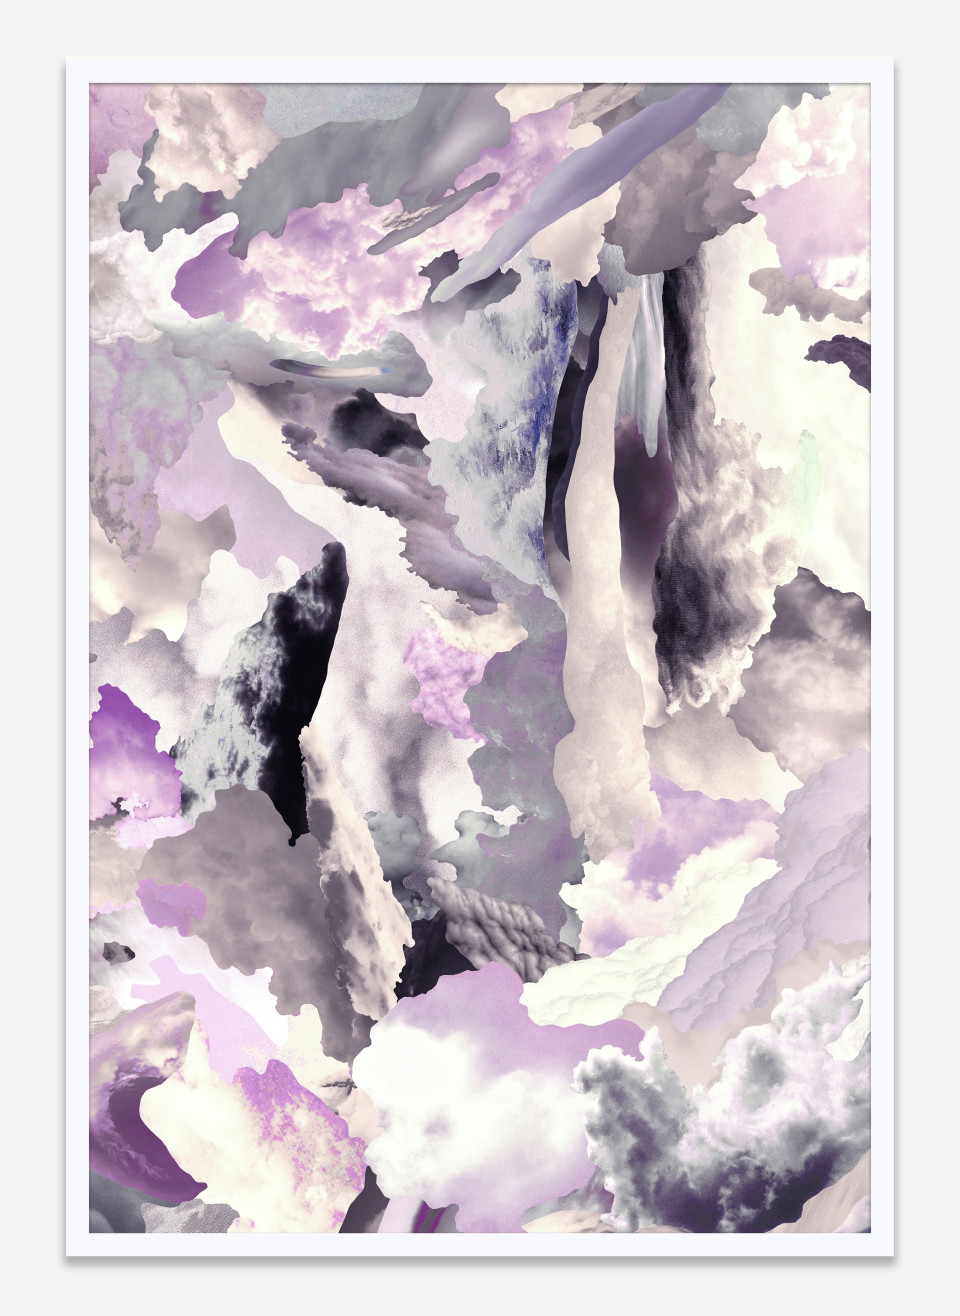 Image: Case Simmons  Clouds V, 2019  pigment print in artist's frame  26 x 18 inches (66 x 45.7 cm)  edition of 1 plus 1 artist's proof